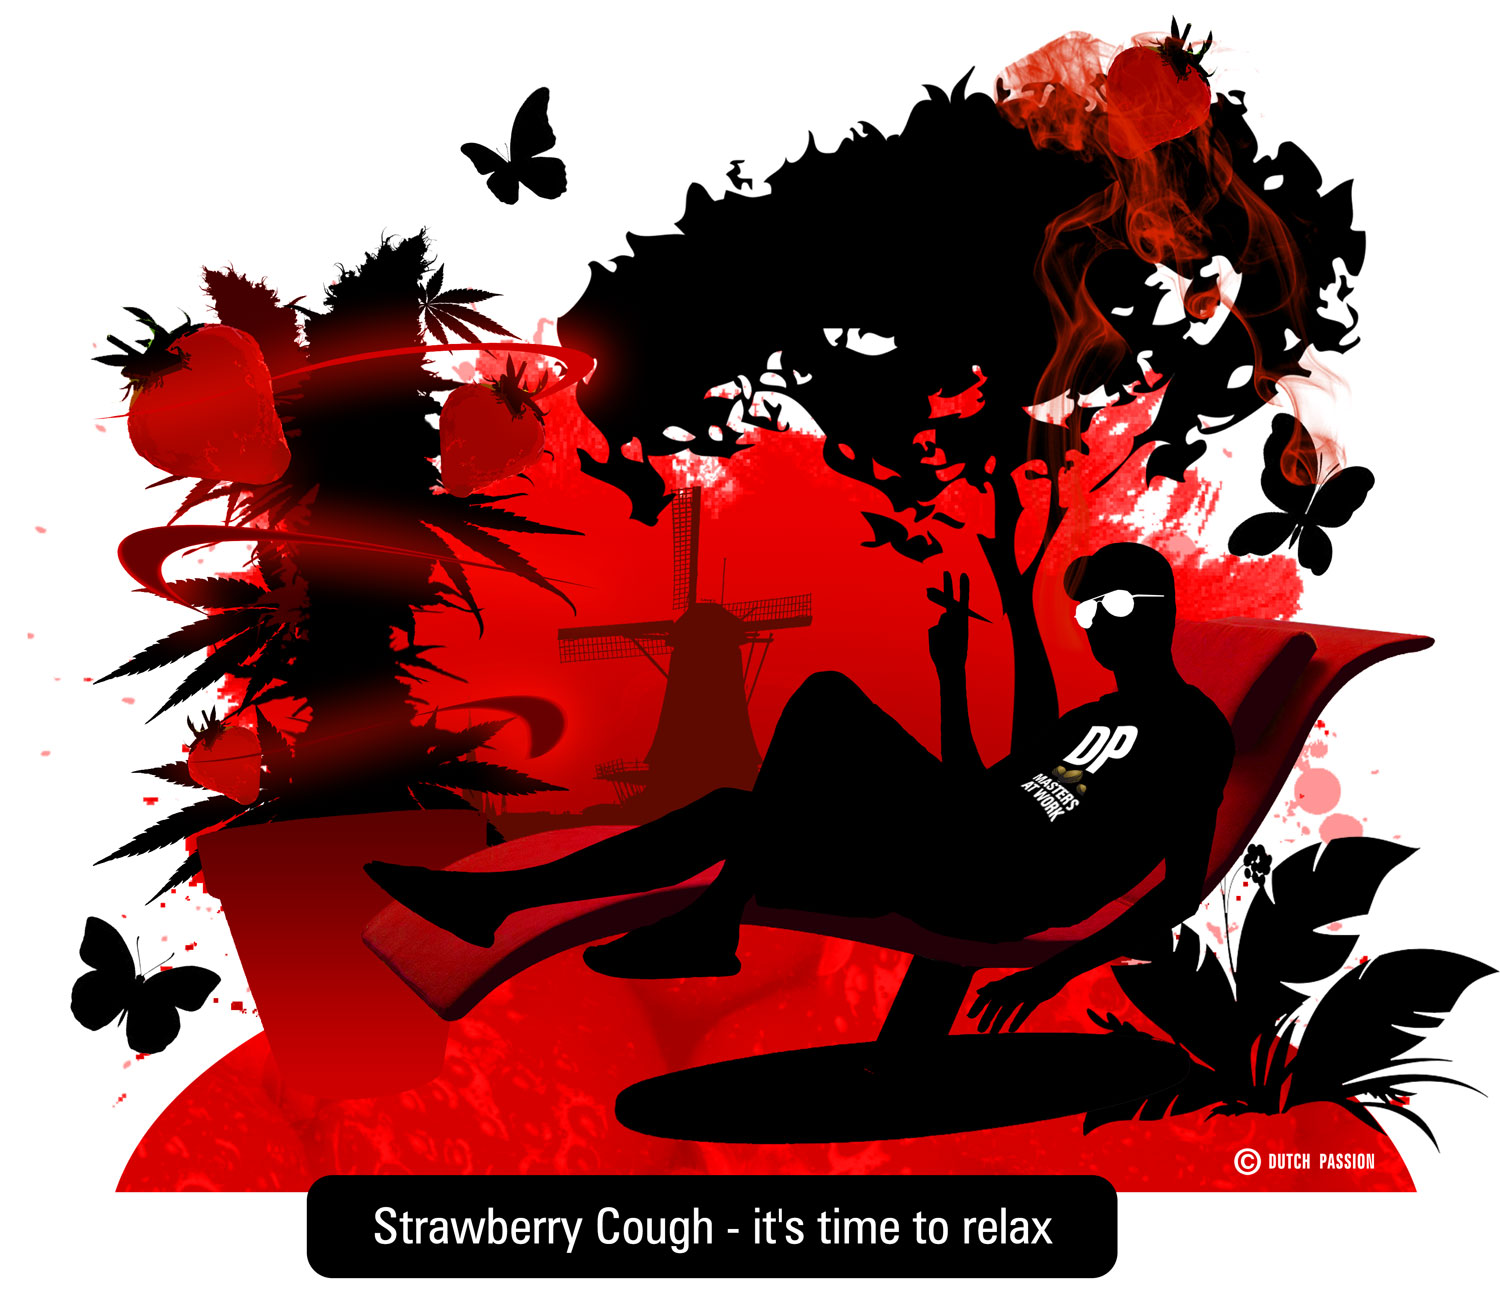 stawberry cough artwork, relax baby